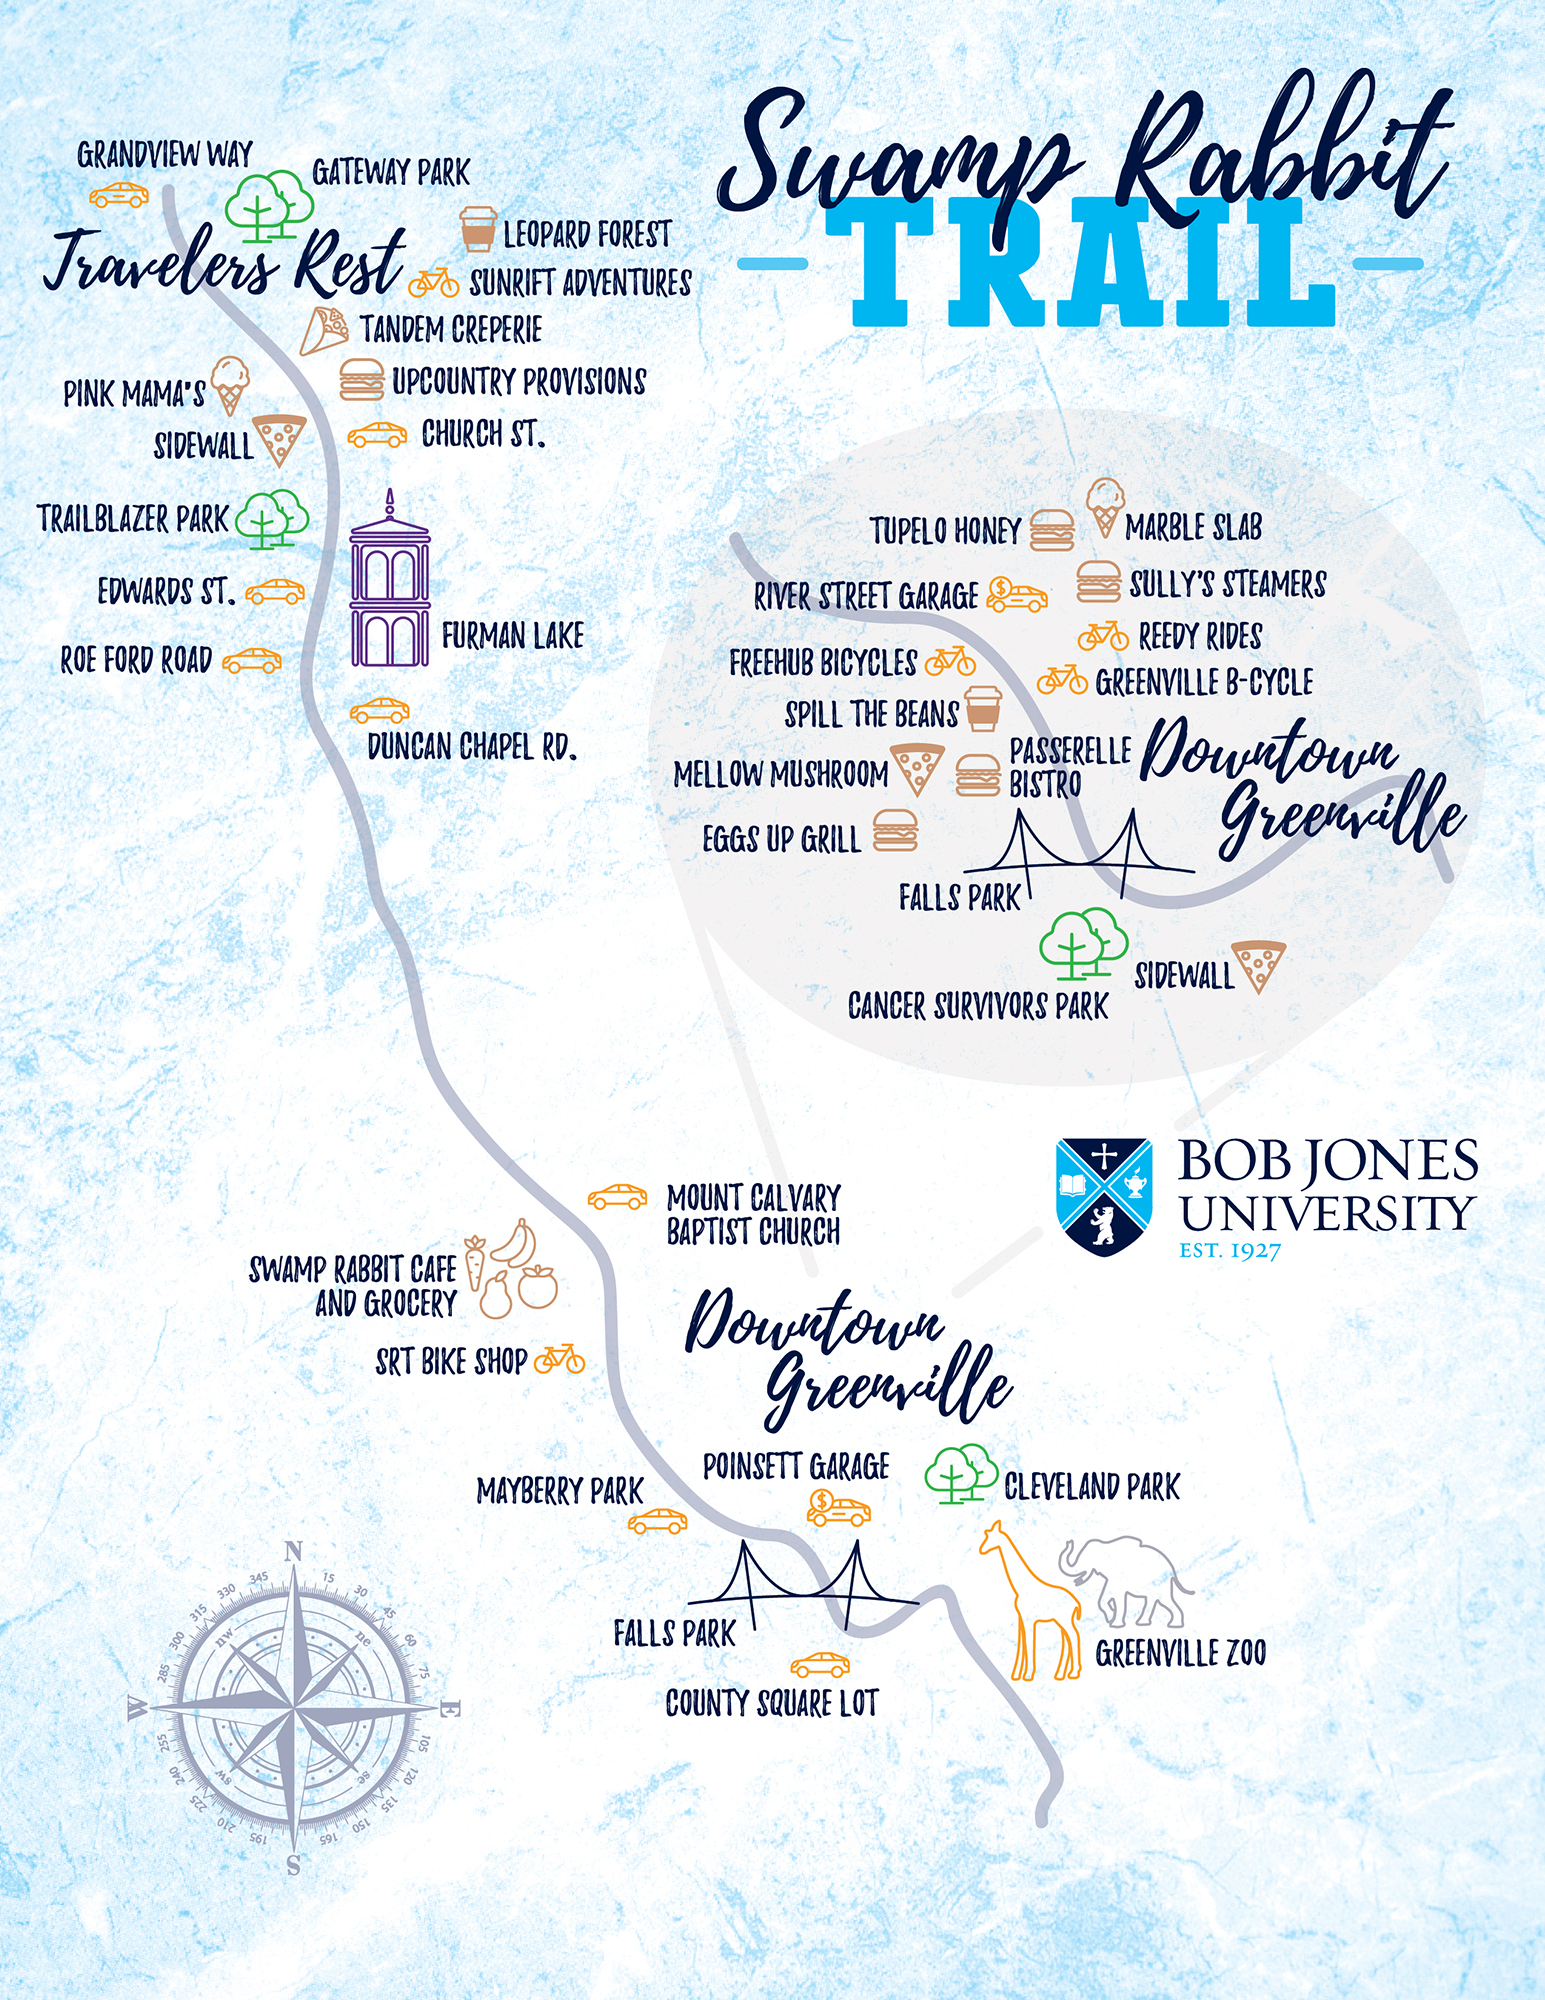 Branded Swamp Rabbit Trail map